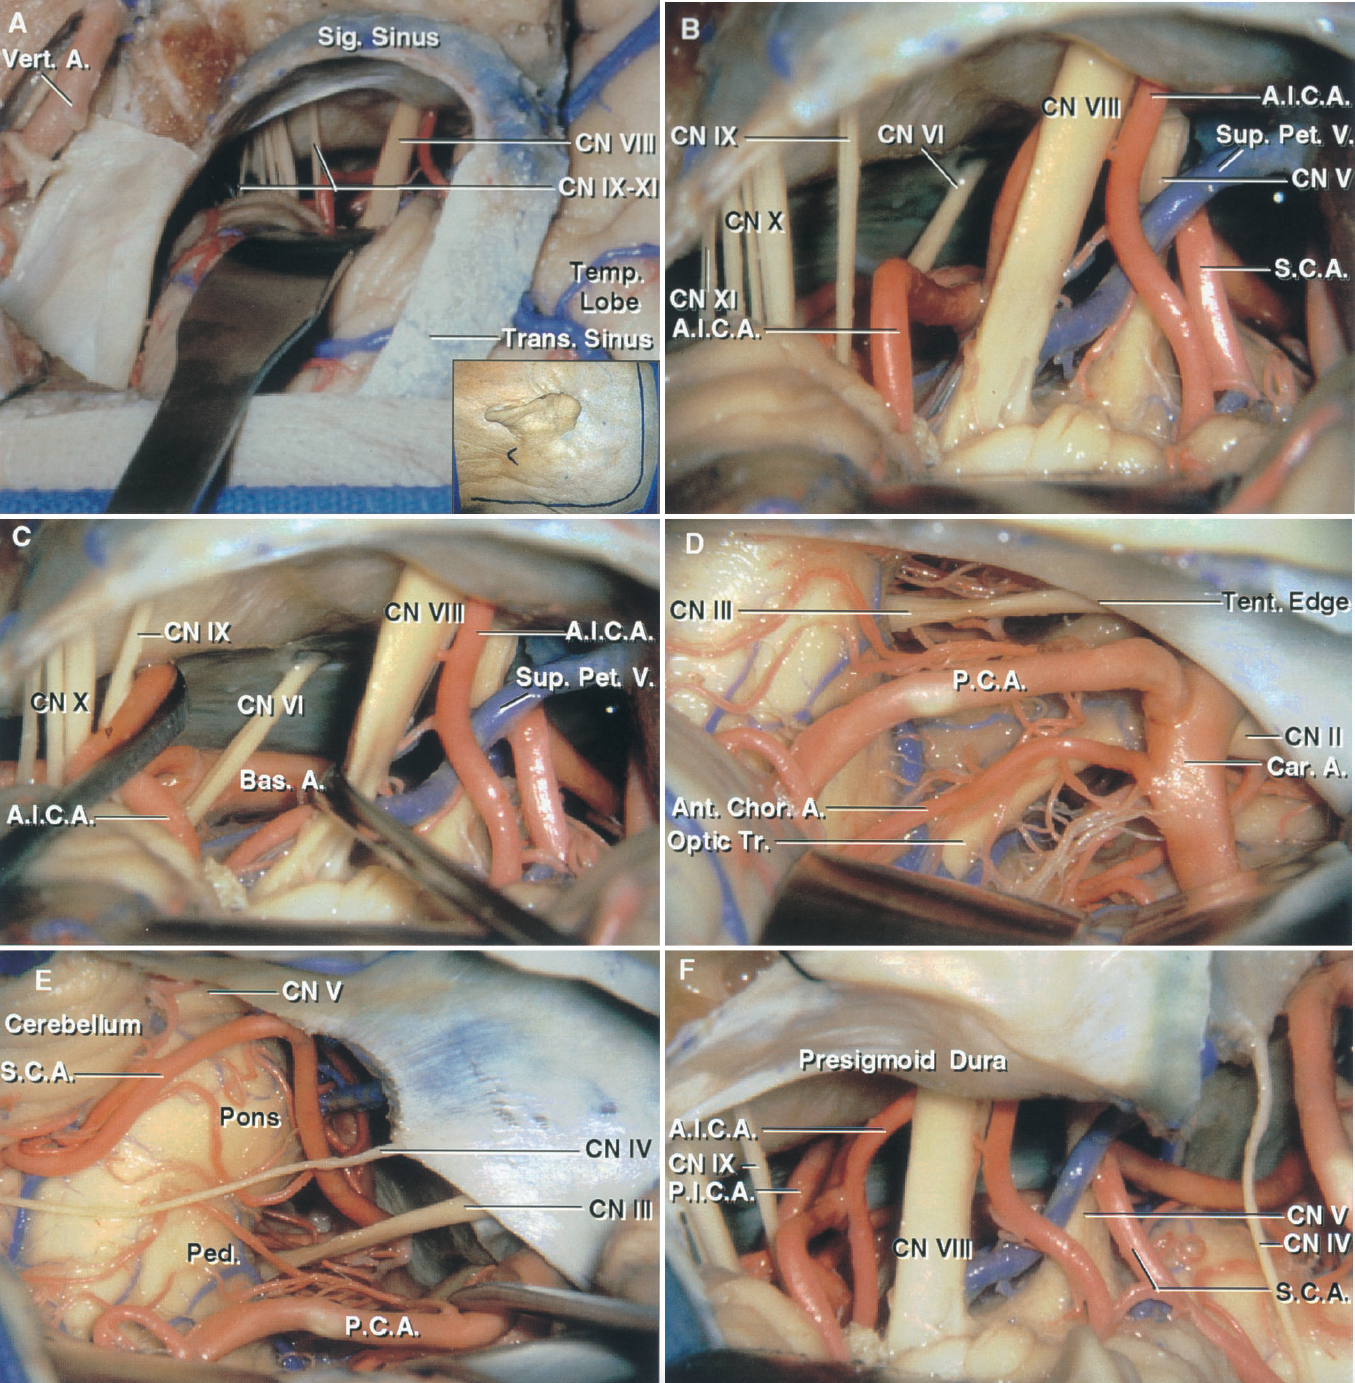 FIGURE 8.16. A–F. Comparison of the retrosigmoid and the various modifications of the presigmoid exposure. The modifications of the presigmoid approach include the minimal mastoidectomy, retrolabyrinthine, partial labyrinthine, translabyrinthine, modified transcochlear, and the full transcochlear approach with facial nerve transposition. A, the scalp incision (insert) is positioned for a supra- and infratentorial exposure through a temporo-occipital craniotomy. A temporo-occipital craniotomy has been completed and the dura opened to expose the temporal lobe and the retrosigmoid area. The transverse and sigmoid sinuses have been preserved. The cerebellum has been retracted to expose the nerves in the cerebellopontine angle. B, enlarged view of the retrosigmoid exposure to compare with the exposure obtained with the various modification of the presigmoid approach. C, in the retrosigmoid exposure the vestibulocochlear nerve has been elevated and the glossopharyngeal nerve depressed to expose the basilar artery at the origin of the AICA. D, subtemporal exposure. The temporal lobe has been elevated to expose the optic tract and oculomotor nerve and the PCA, internal carotid, and anterior choroidal arteries. E, the tentorium has been opened while preserving the trochlear nerve. The SCA courses below and the PCA above the oculomotor and trochlear nerves. F, minimal mastoidectomy modification of the presigmoid approach. The minimal mastoidectomy approach is completed by removing only enough bone in the front of the sigmoid sinus so that the presigmoid dura can be opened to expose the posterior cranial fossa. The bony capsule of the labyrinth is not exposed in the minimal mastoidectomy as it is in the retrolabyrinthine approach. The exposure shown with the minimal mastoidectomy in this figure is to be compared with the retrosigmoid exposure shown in B. A., artery; Ac., acoustic; A.I.C.A., anteroinferior cerebellar artery; Ant., anterior; Bas., basilar; Car., carotid; Chor., 